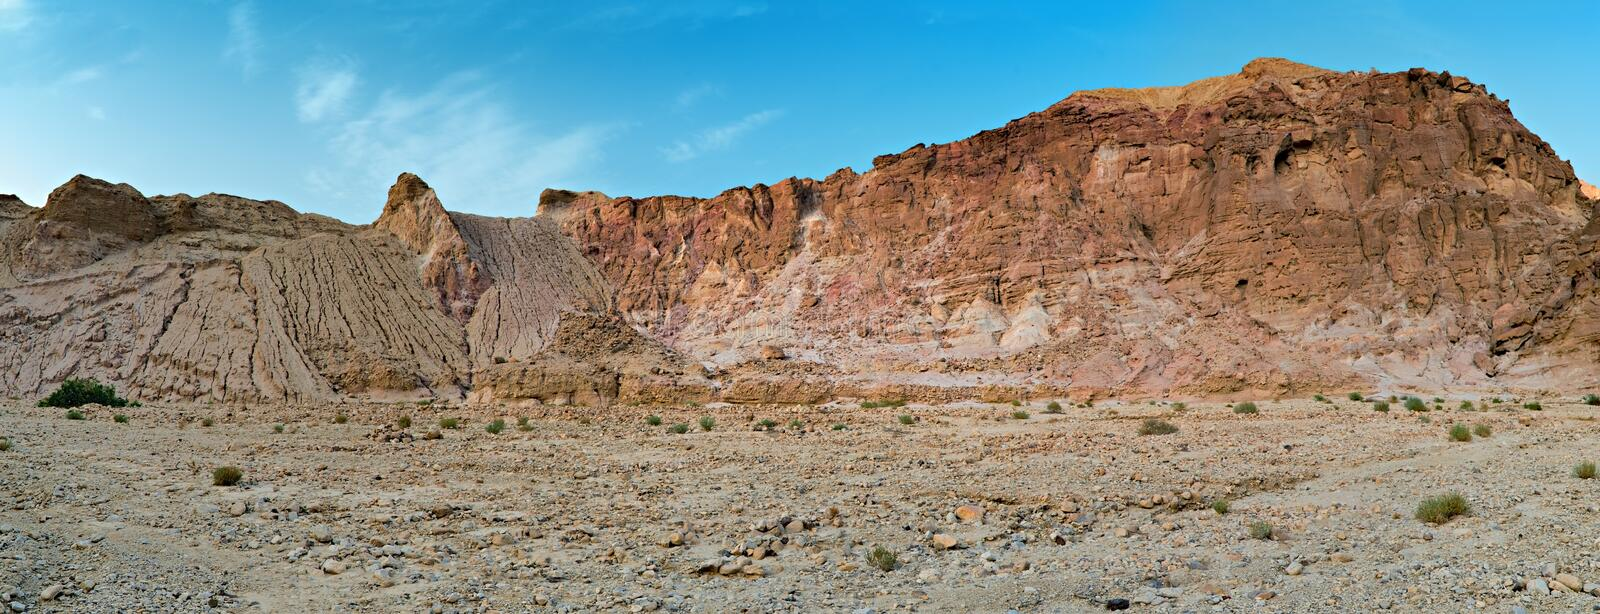 Stones of Eilat's mountains, Israel royalty free stock photography